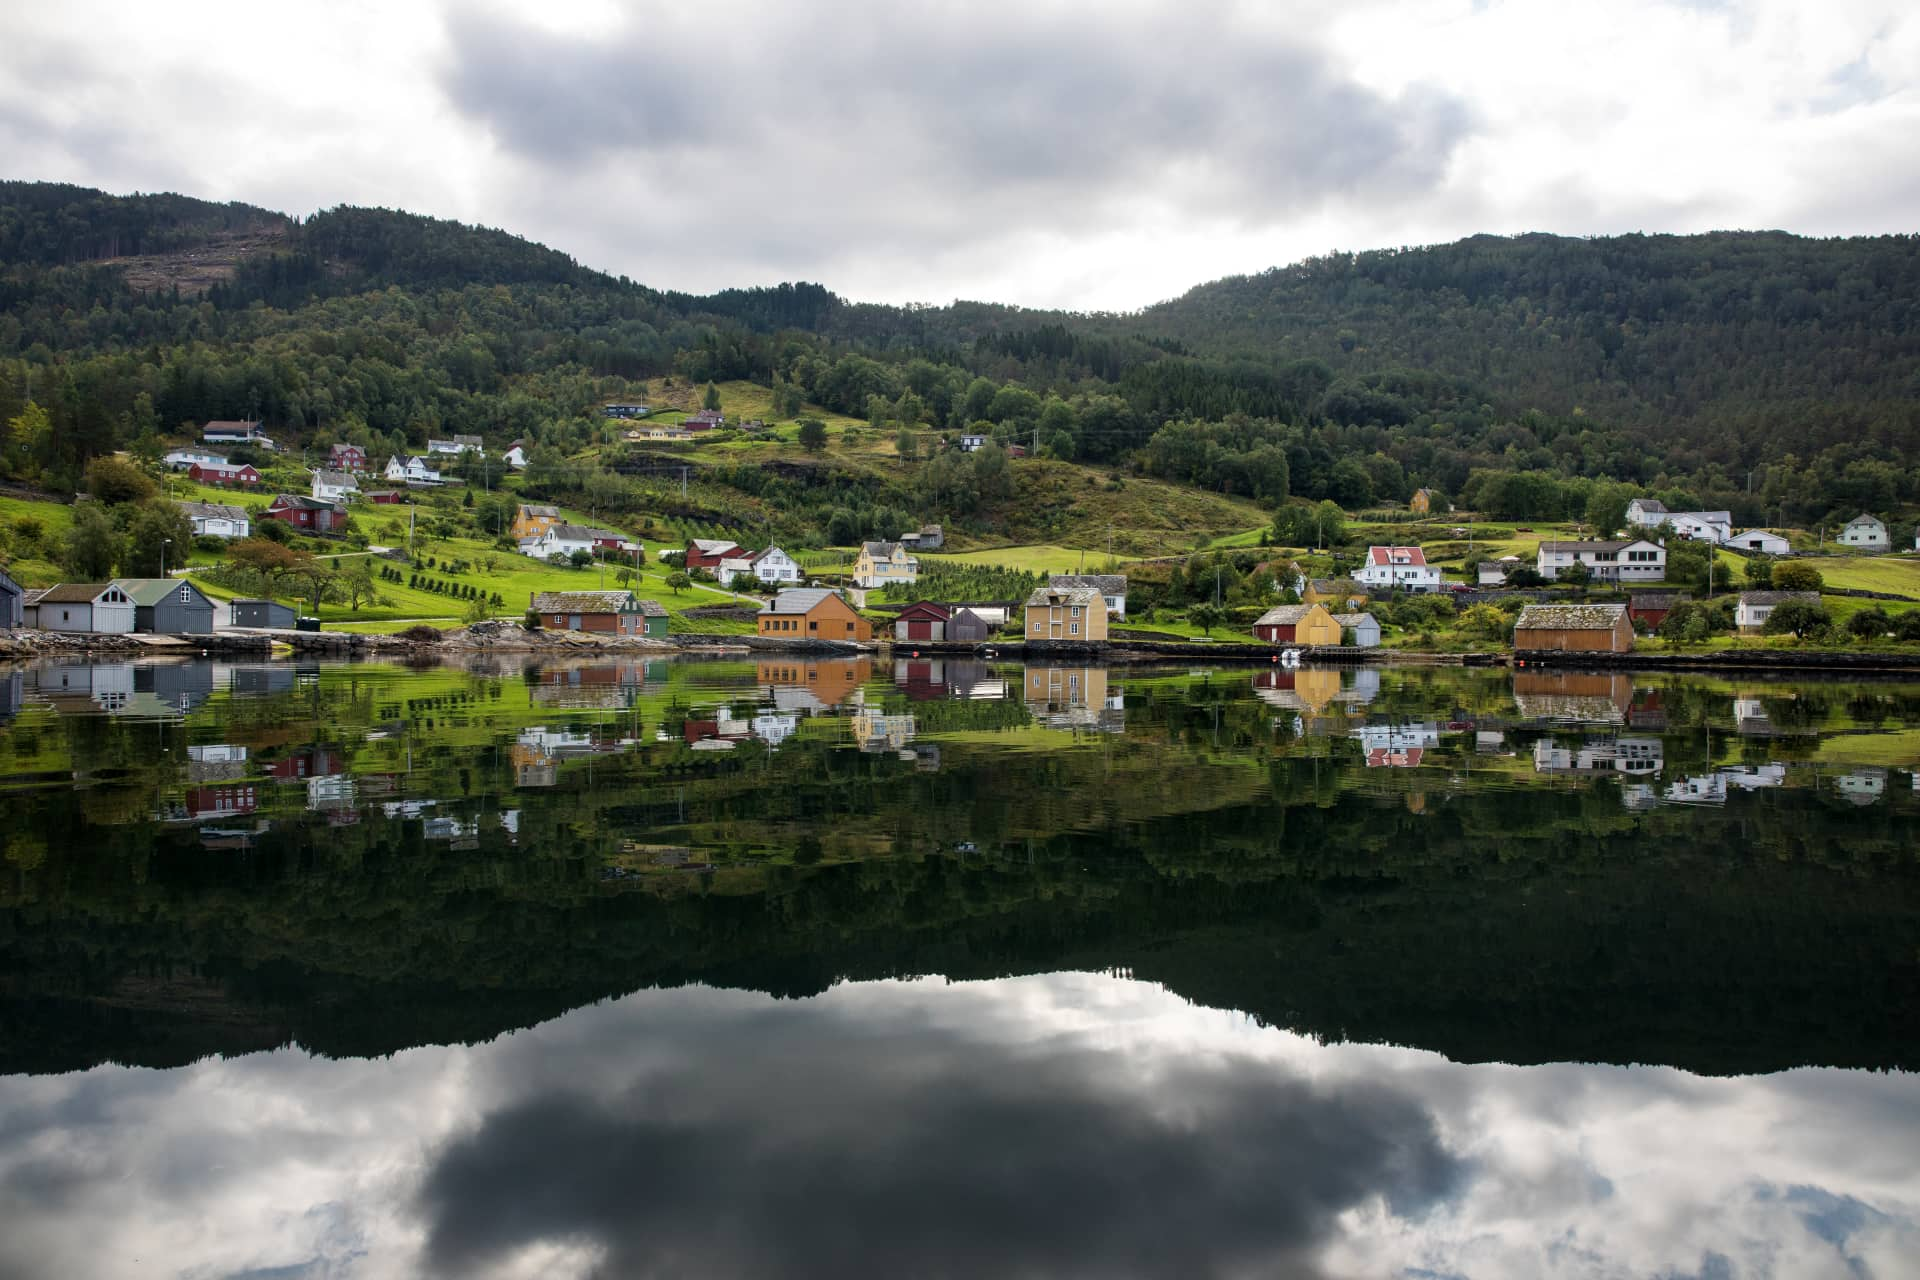 A reflection of a small village with houses in red, white, red and orange mirrored in the Hardangerfjord.